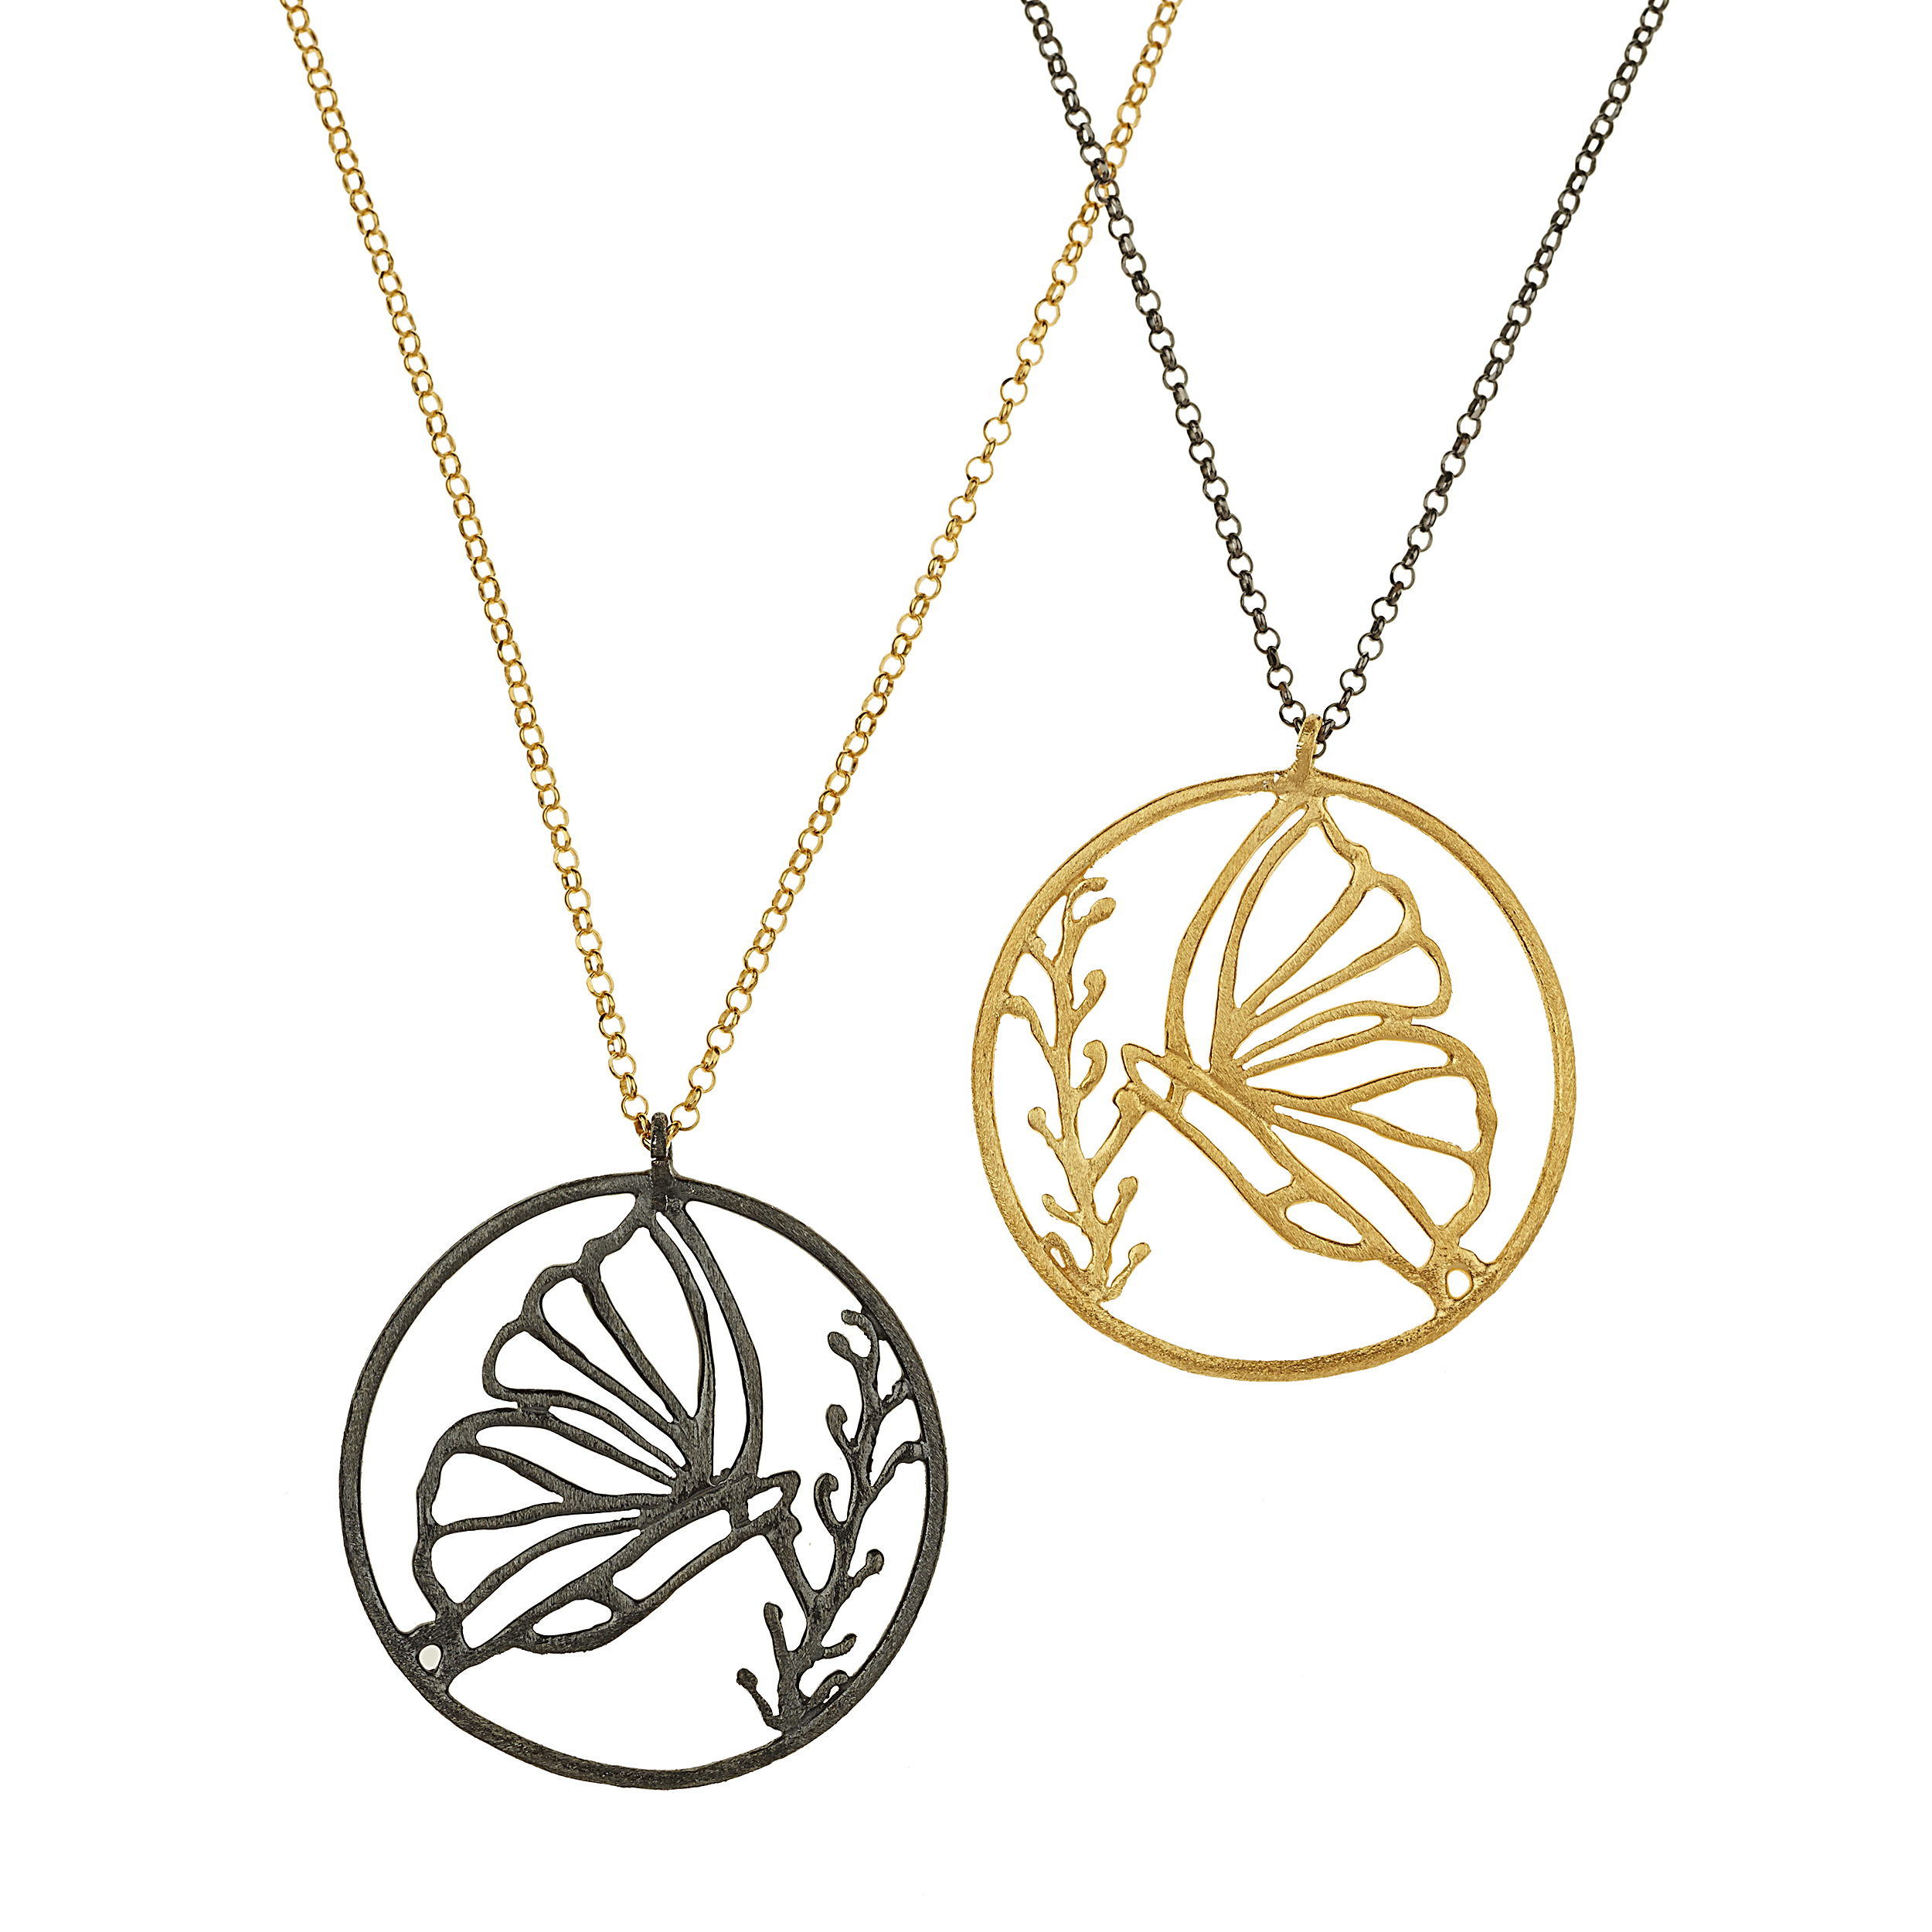 d5f991a1dfd239 MADAME BUTTERFLY Necklace – Danai Giannelli